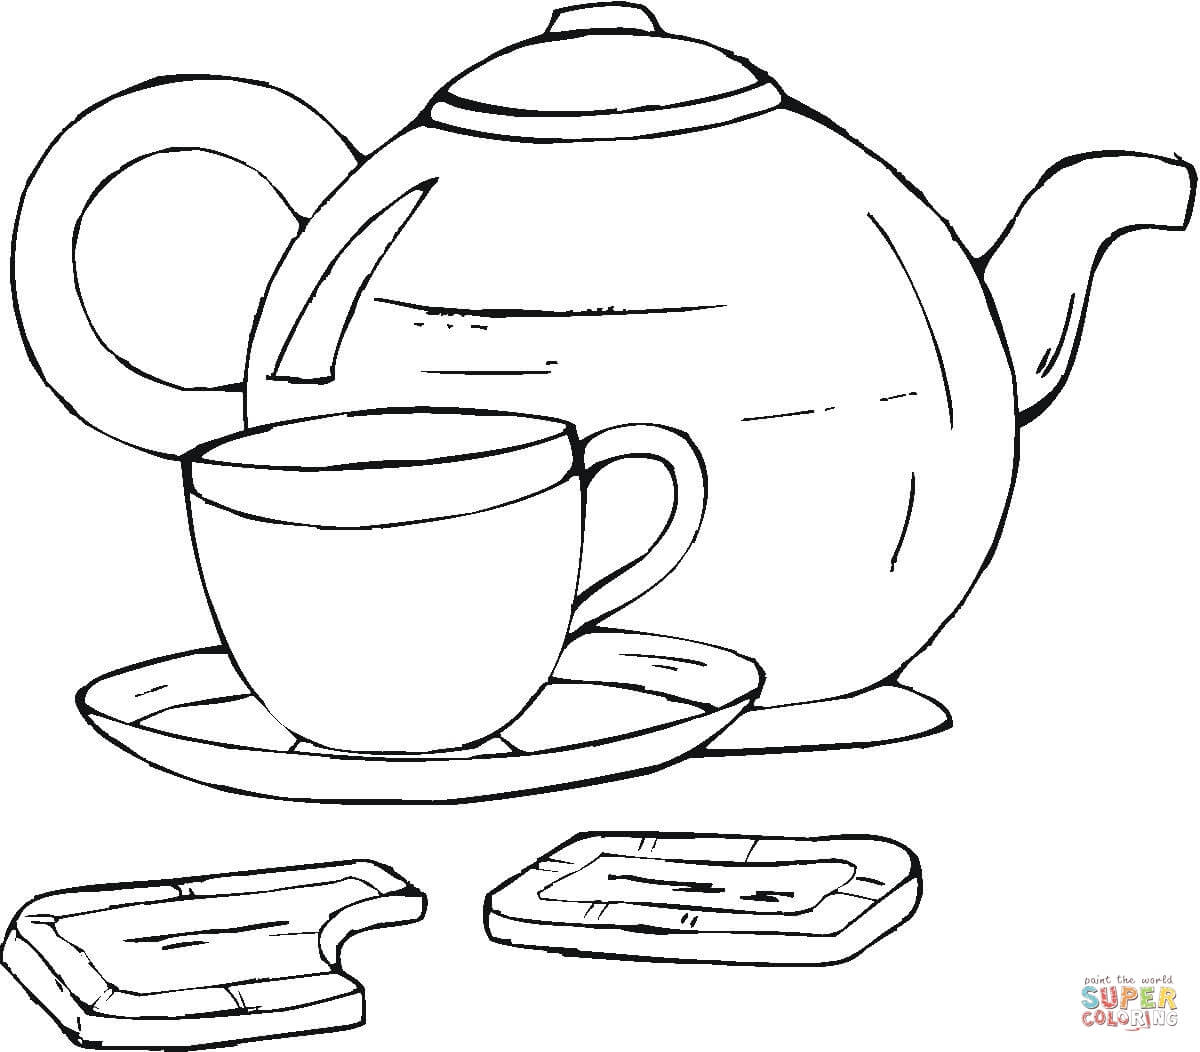 Tea Cup Coloring Page | Free Printable Coloring Pages - Free Printable Tea Cup Coloring Pages